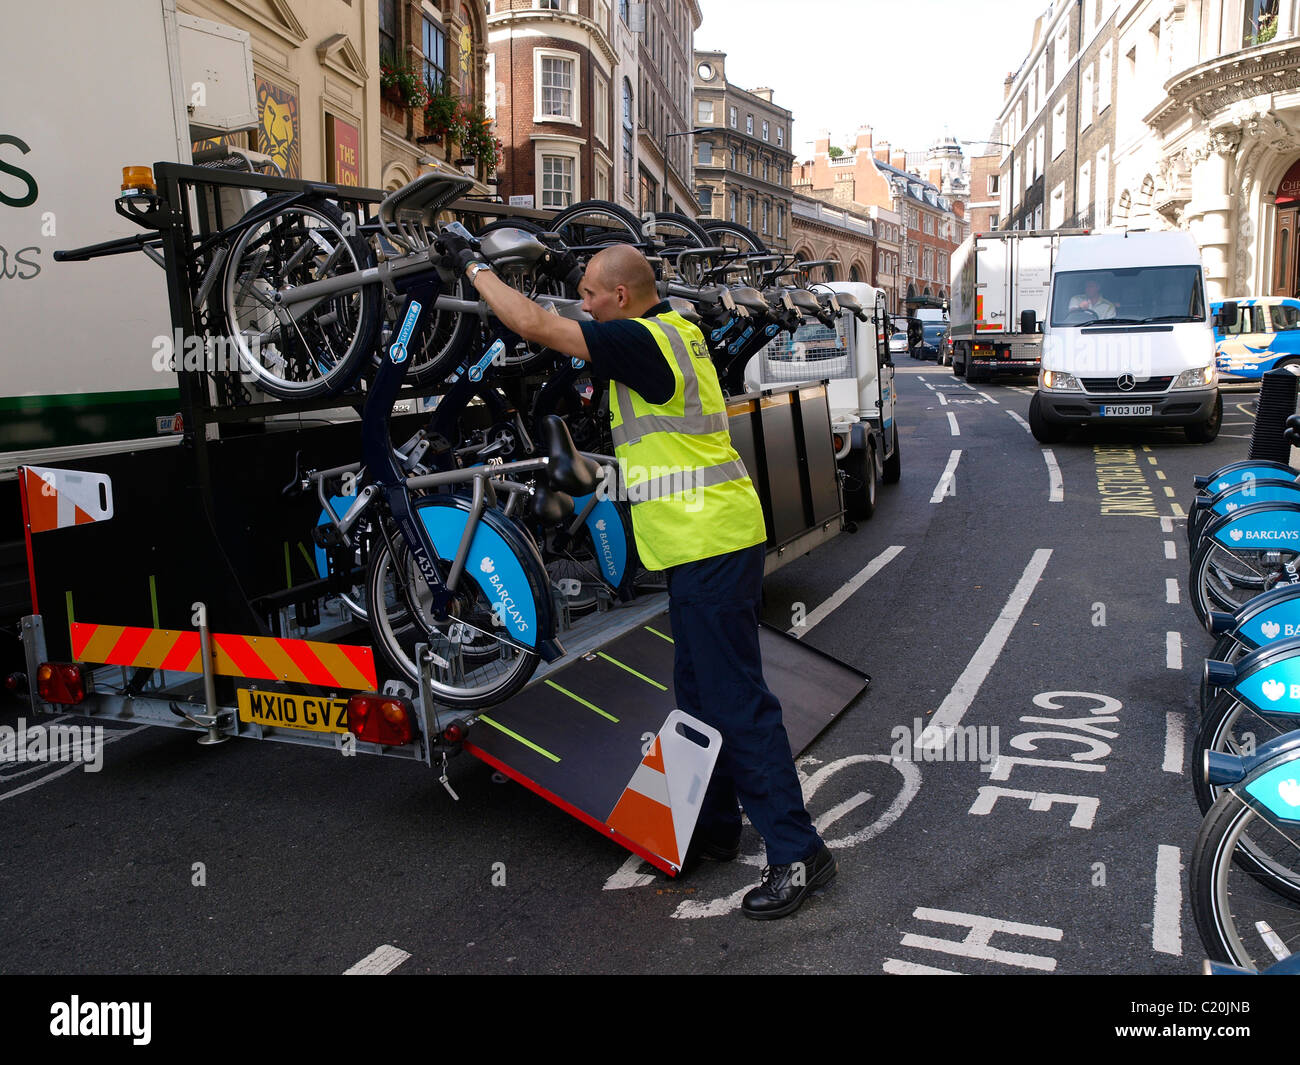 Barclays TFL bicycle scheme maintenance worker loading a bicycle onto a trailer to be taken for repair. - Stock Image